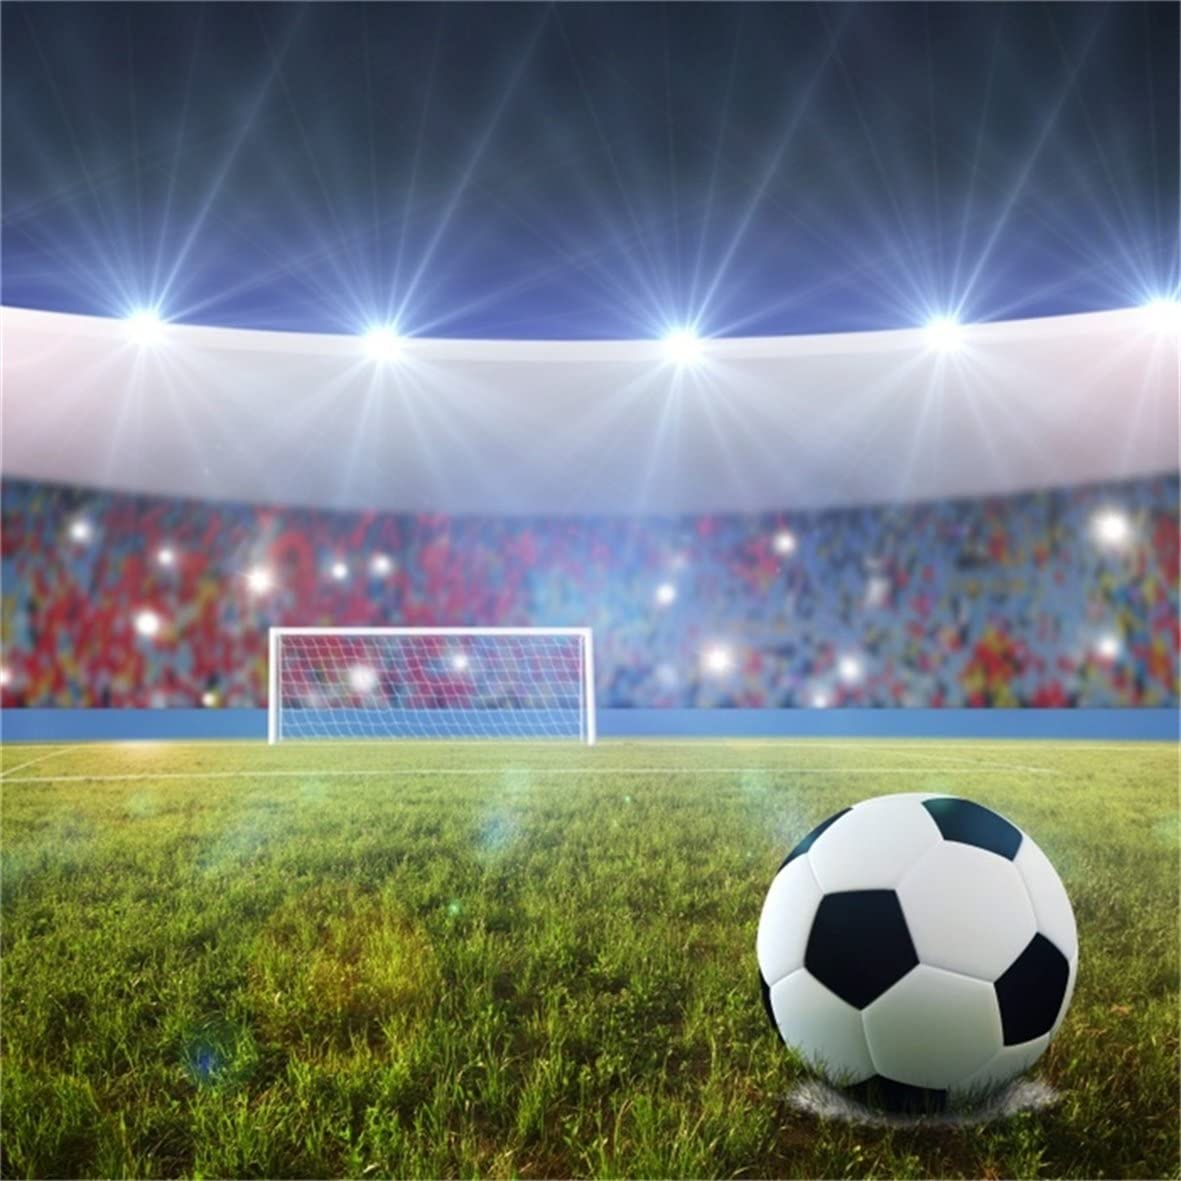 Amazon Com Aofoto 6x6ft Soccer Stadium Backdrop Football Field Fans And Flash Light Night Spotlight Photography Background Sports Match Game Kid Boy Child Girl Portrait Photo Studio Props Video Drape Wallpaper